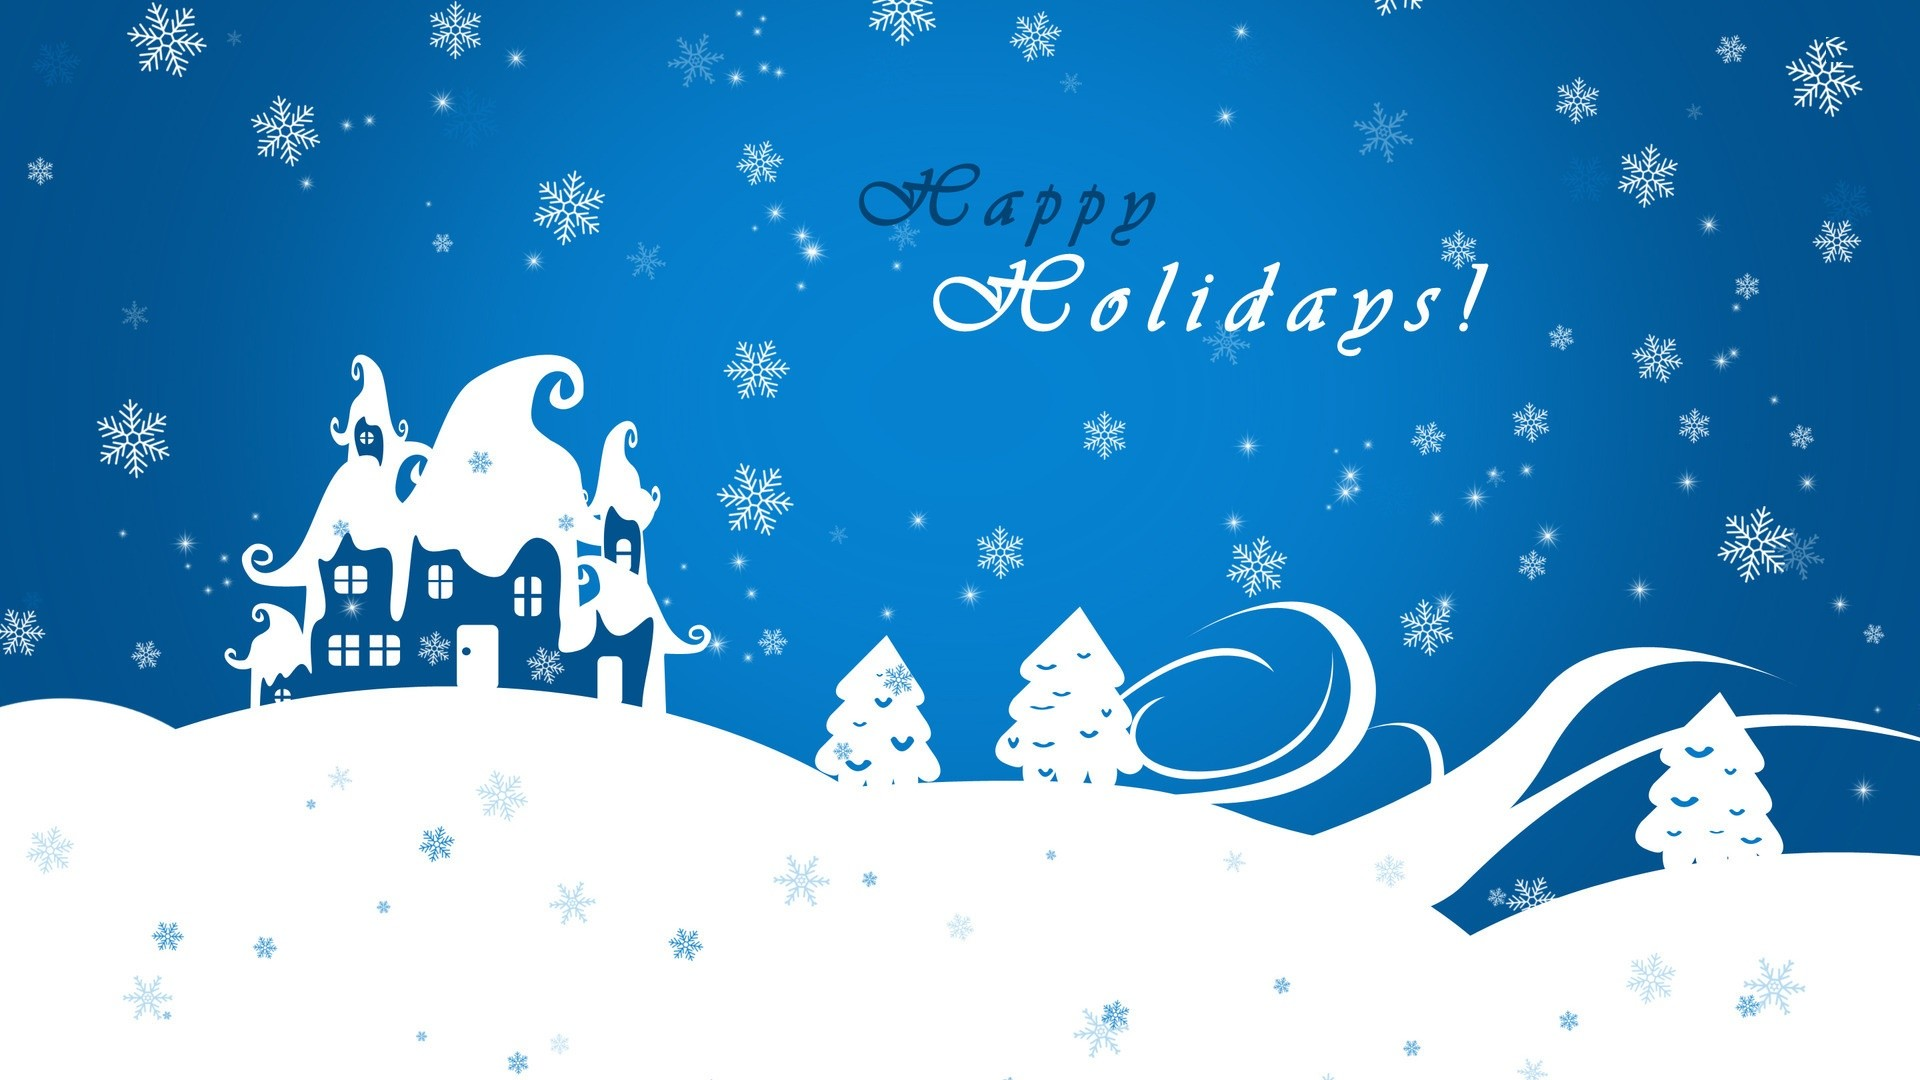 1920x1080, Happy Holidays Hd Wallpaper Backgrounds - Happy Holiday Background Images Free - HD Wallpaper